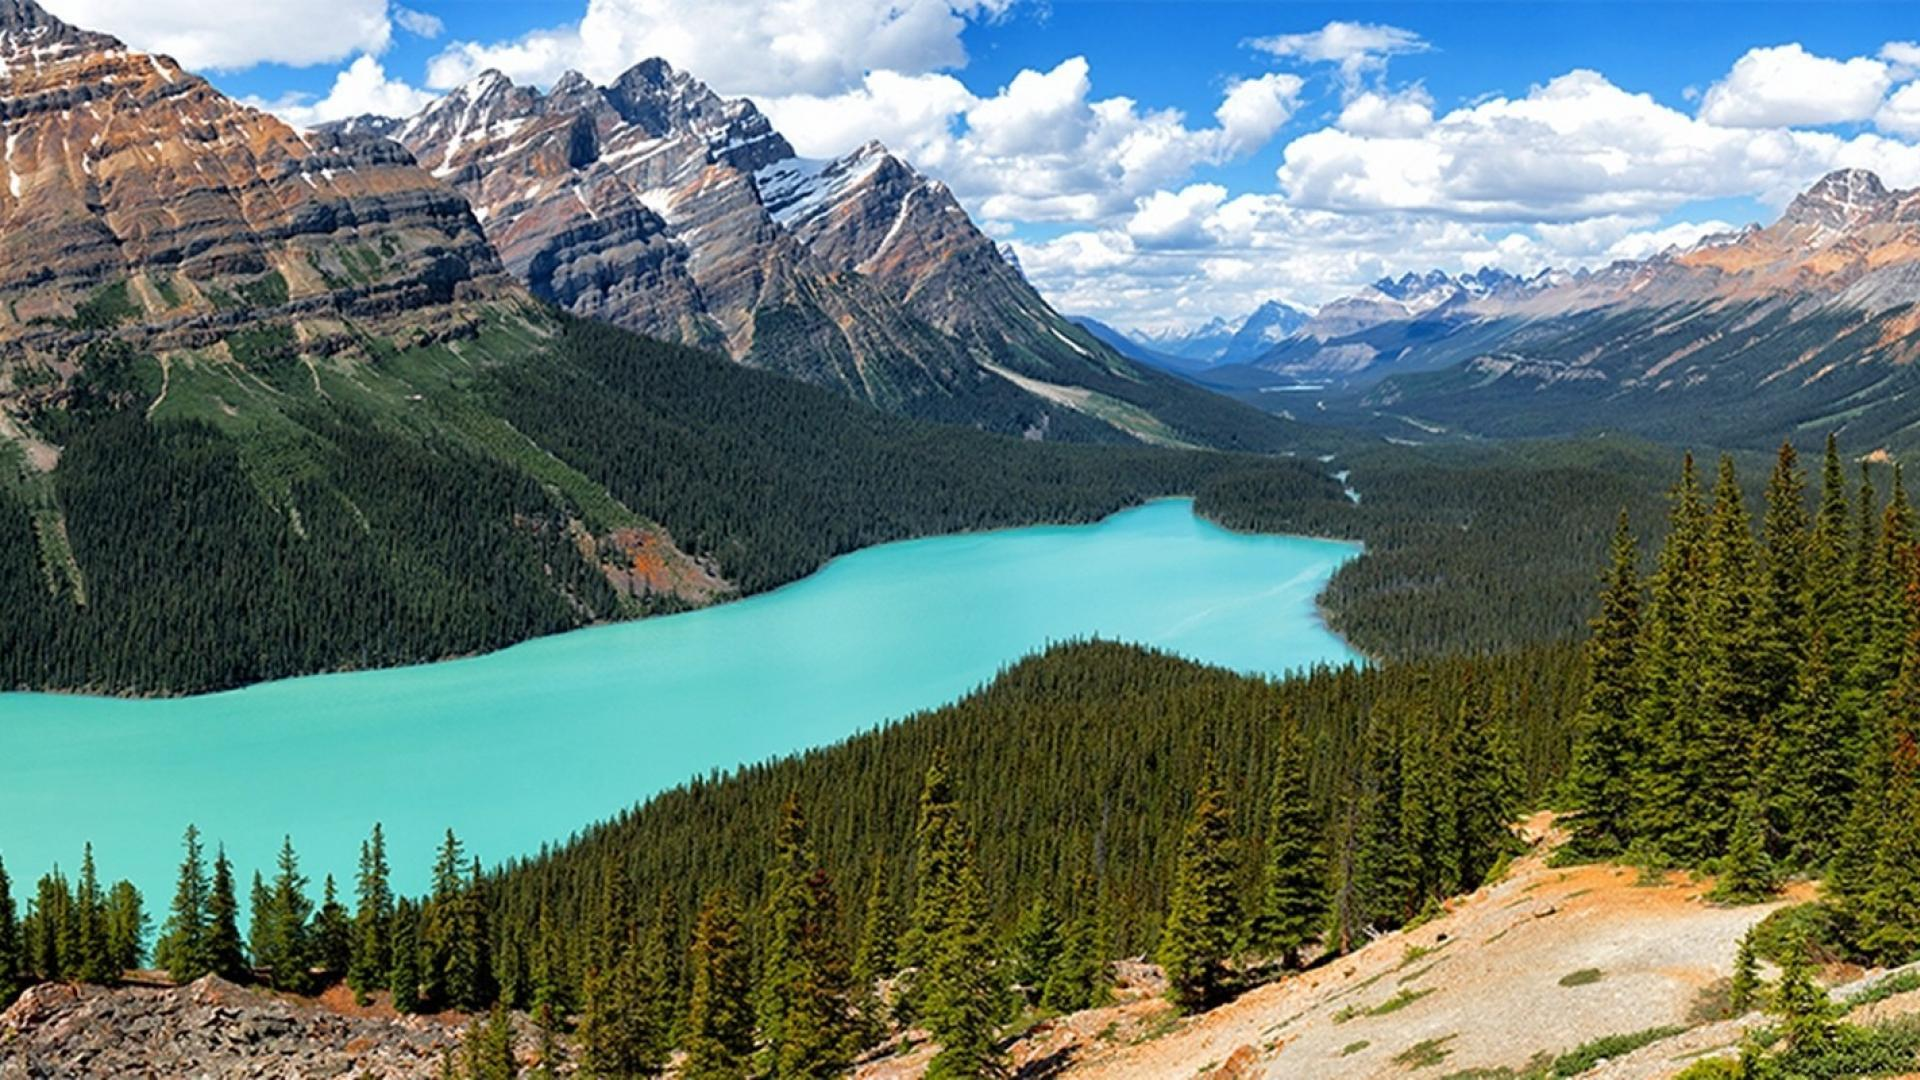 Canadian Rockies Wallpapers